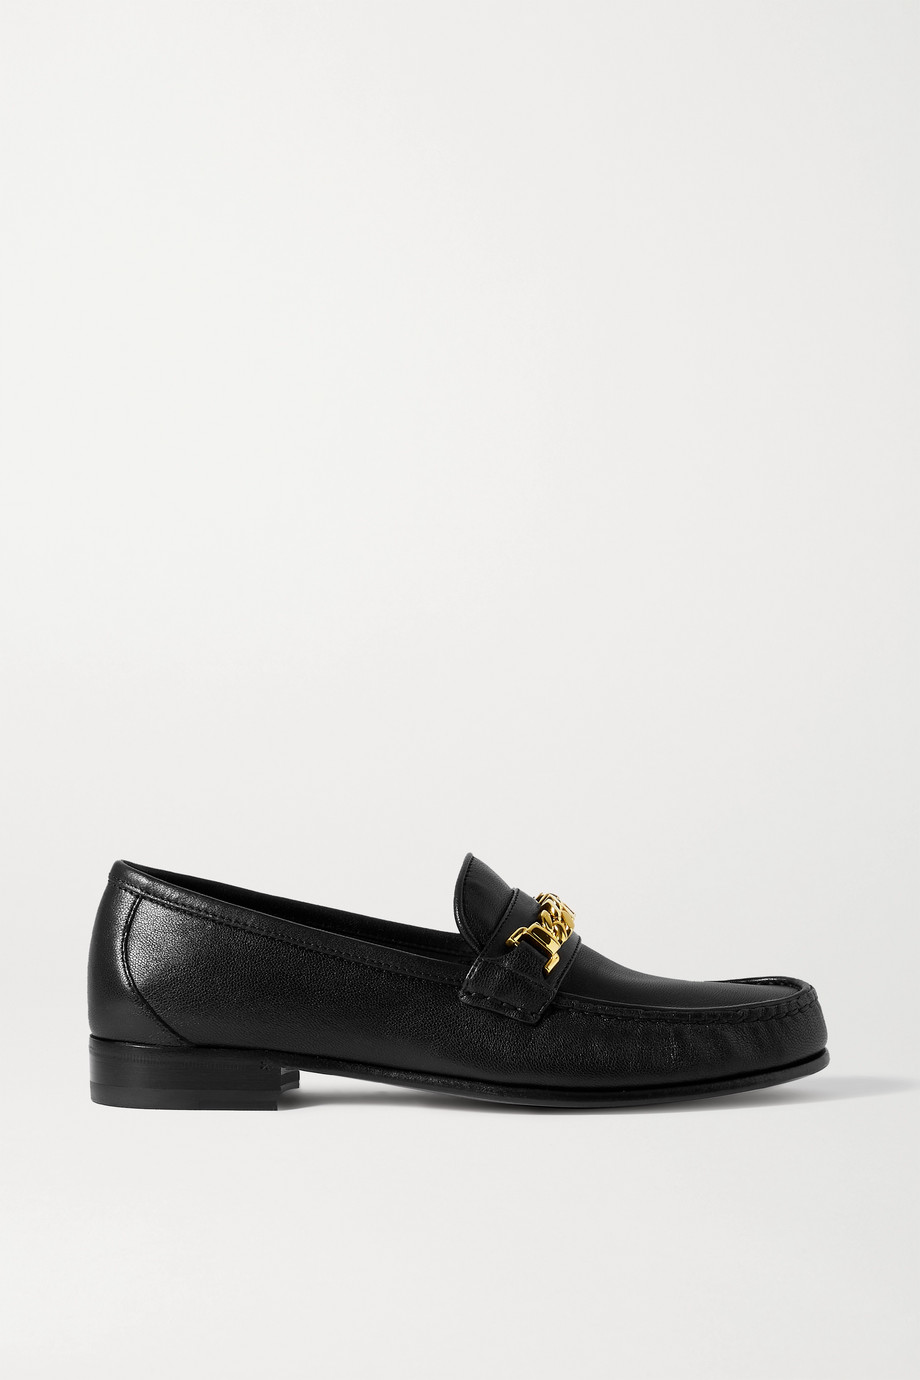 GUCCI Sylvie chain-embellished leather loafers